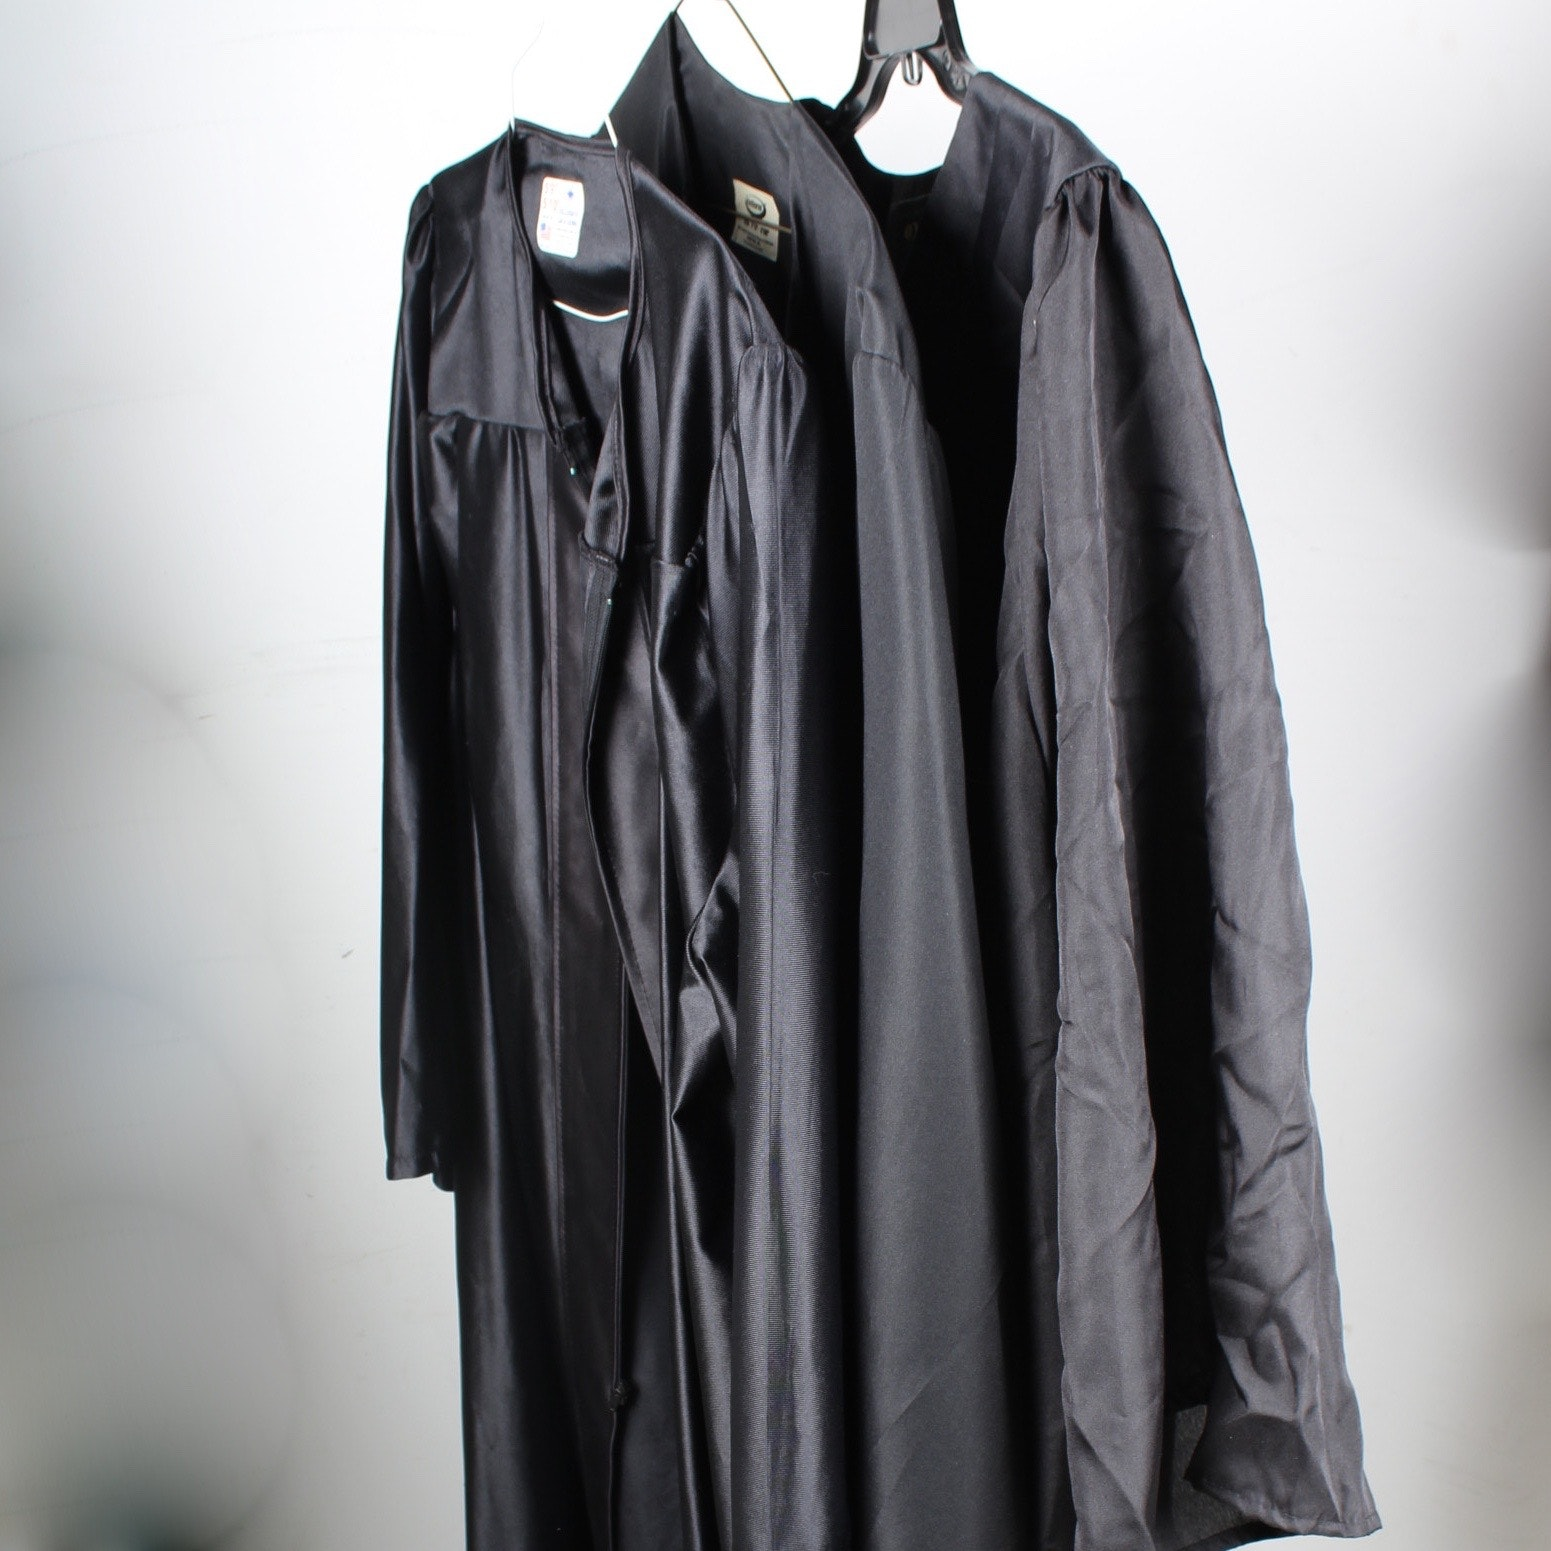 Trio of Commencement Gowns